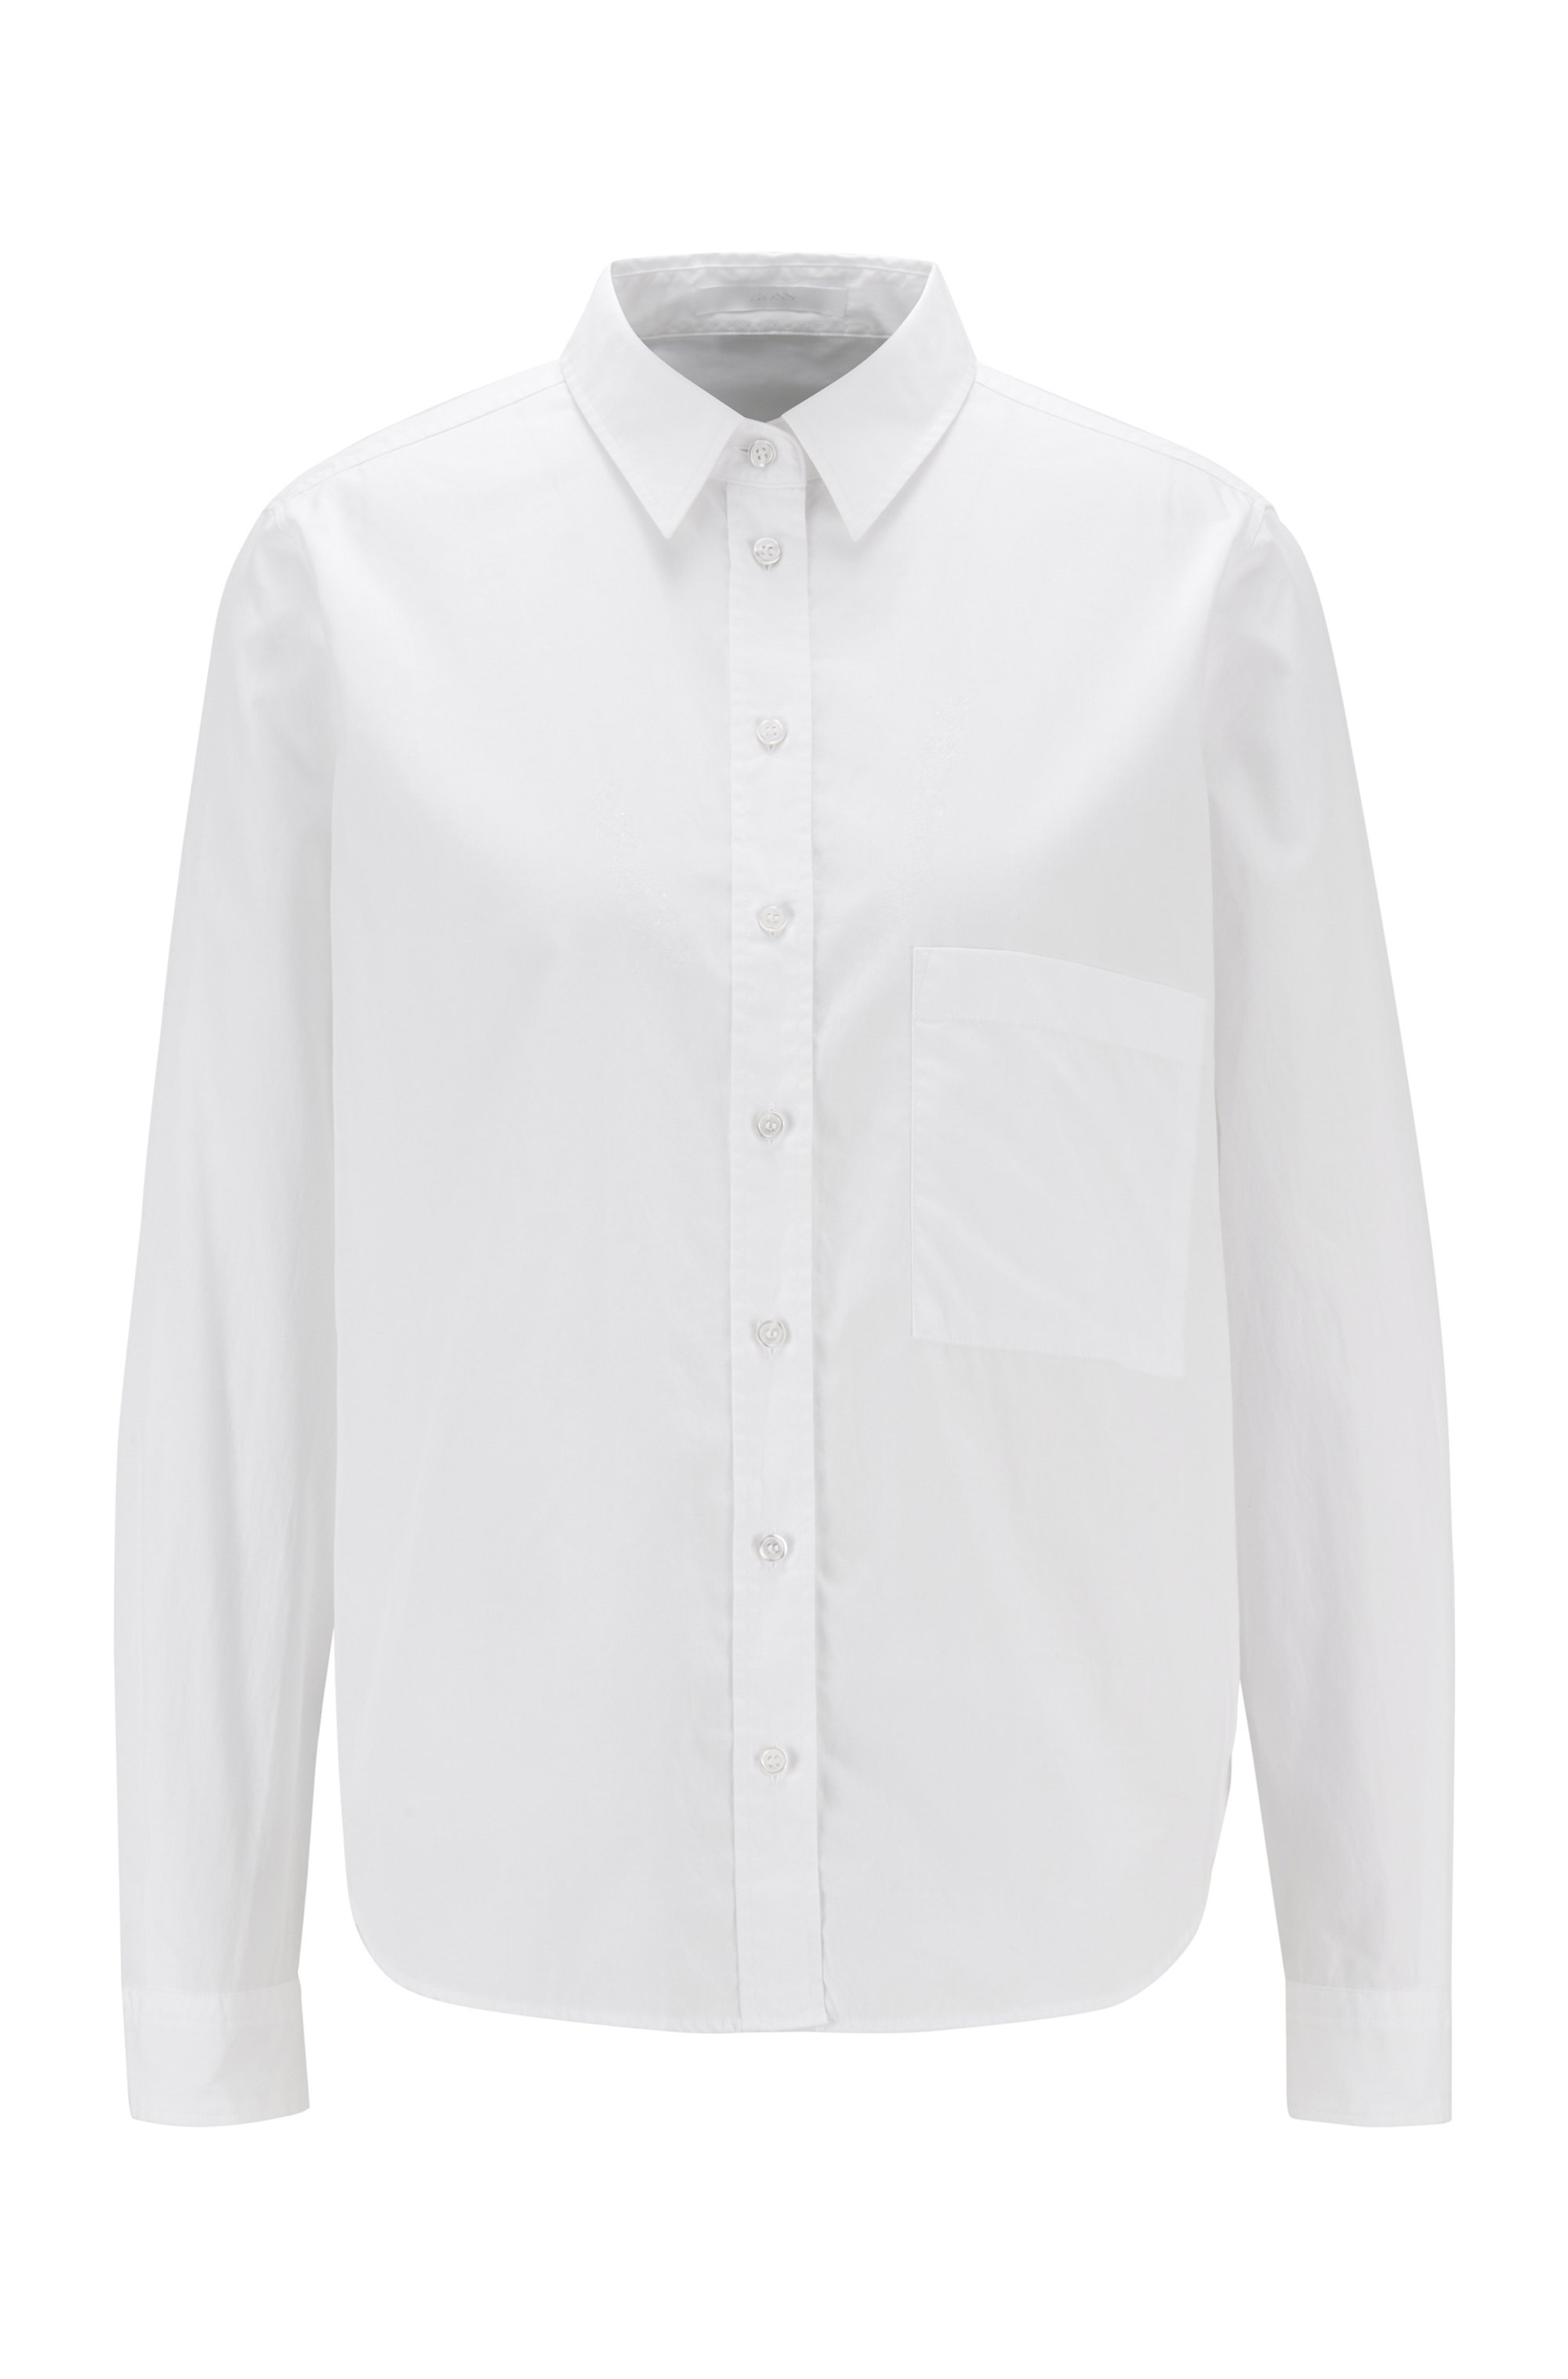 Regular-fit blouse in organic cotton poplin, White